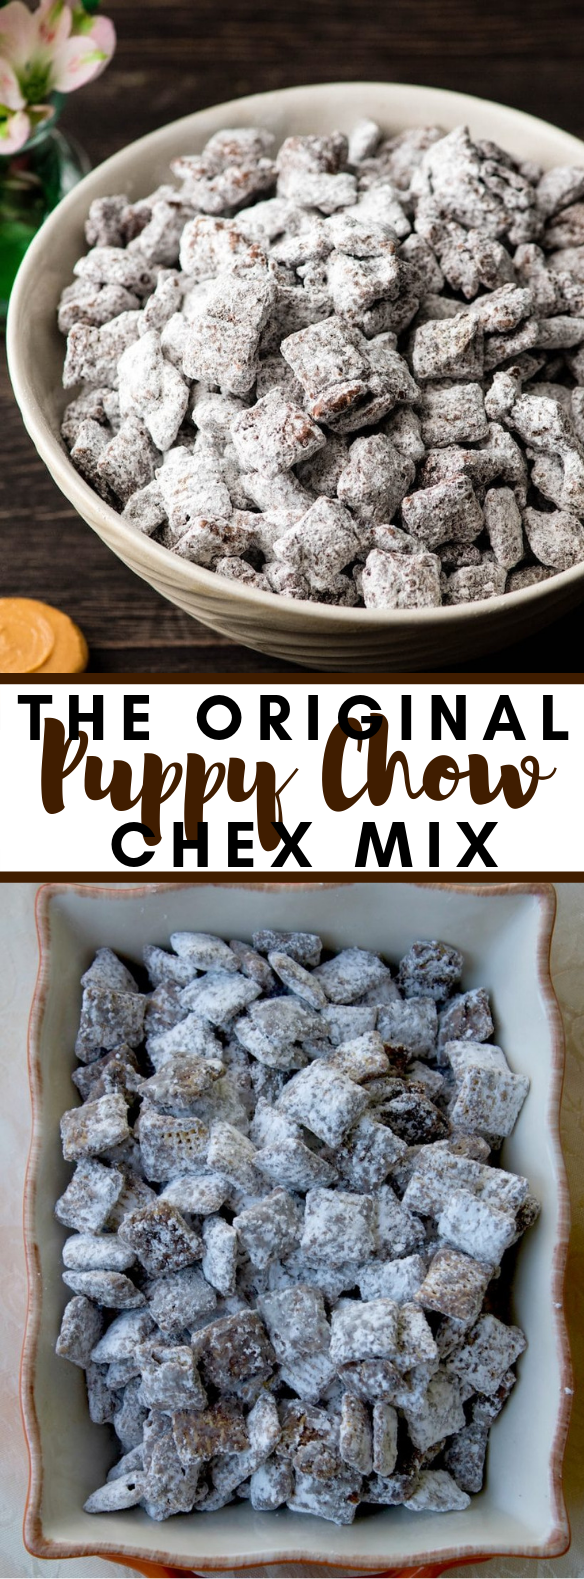 PUPPY CHOW CHEX MIX RECIPE FOR ANY OCCASION! #desserts #kidfriendlyrecipe